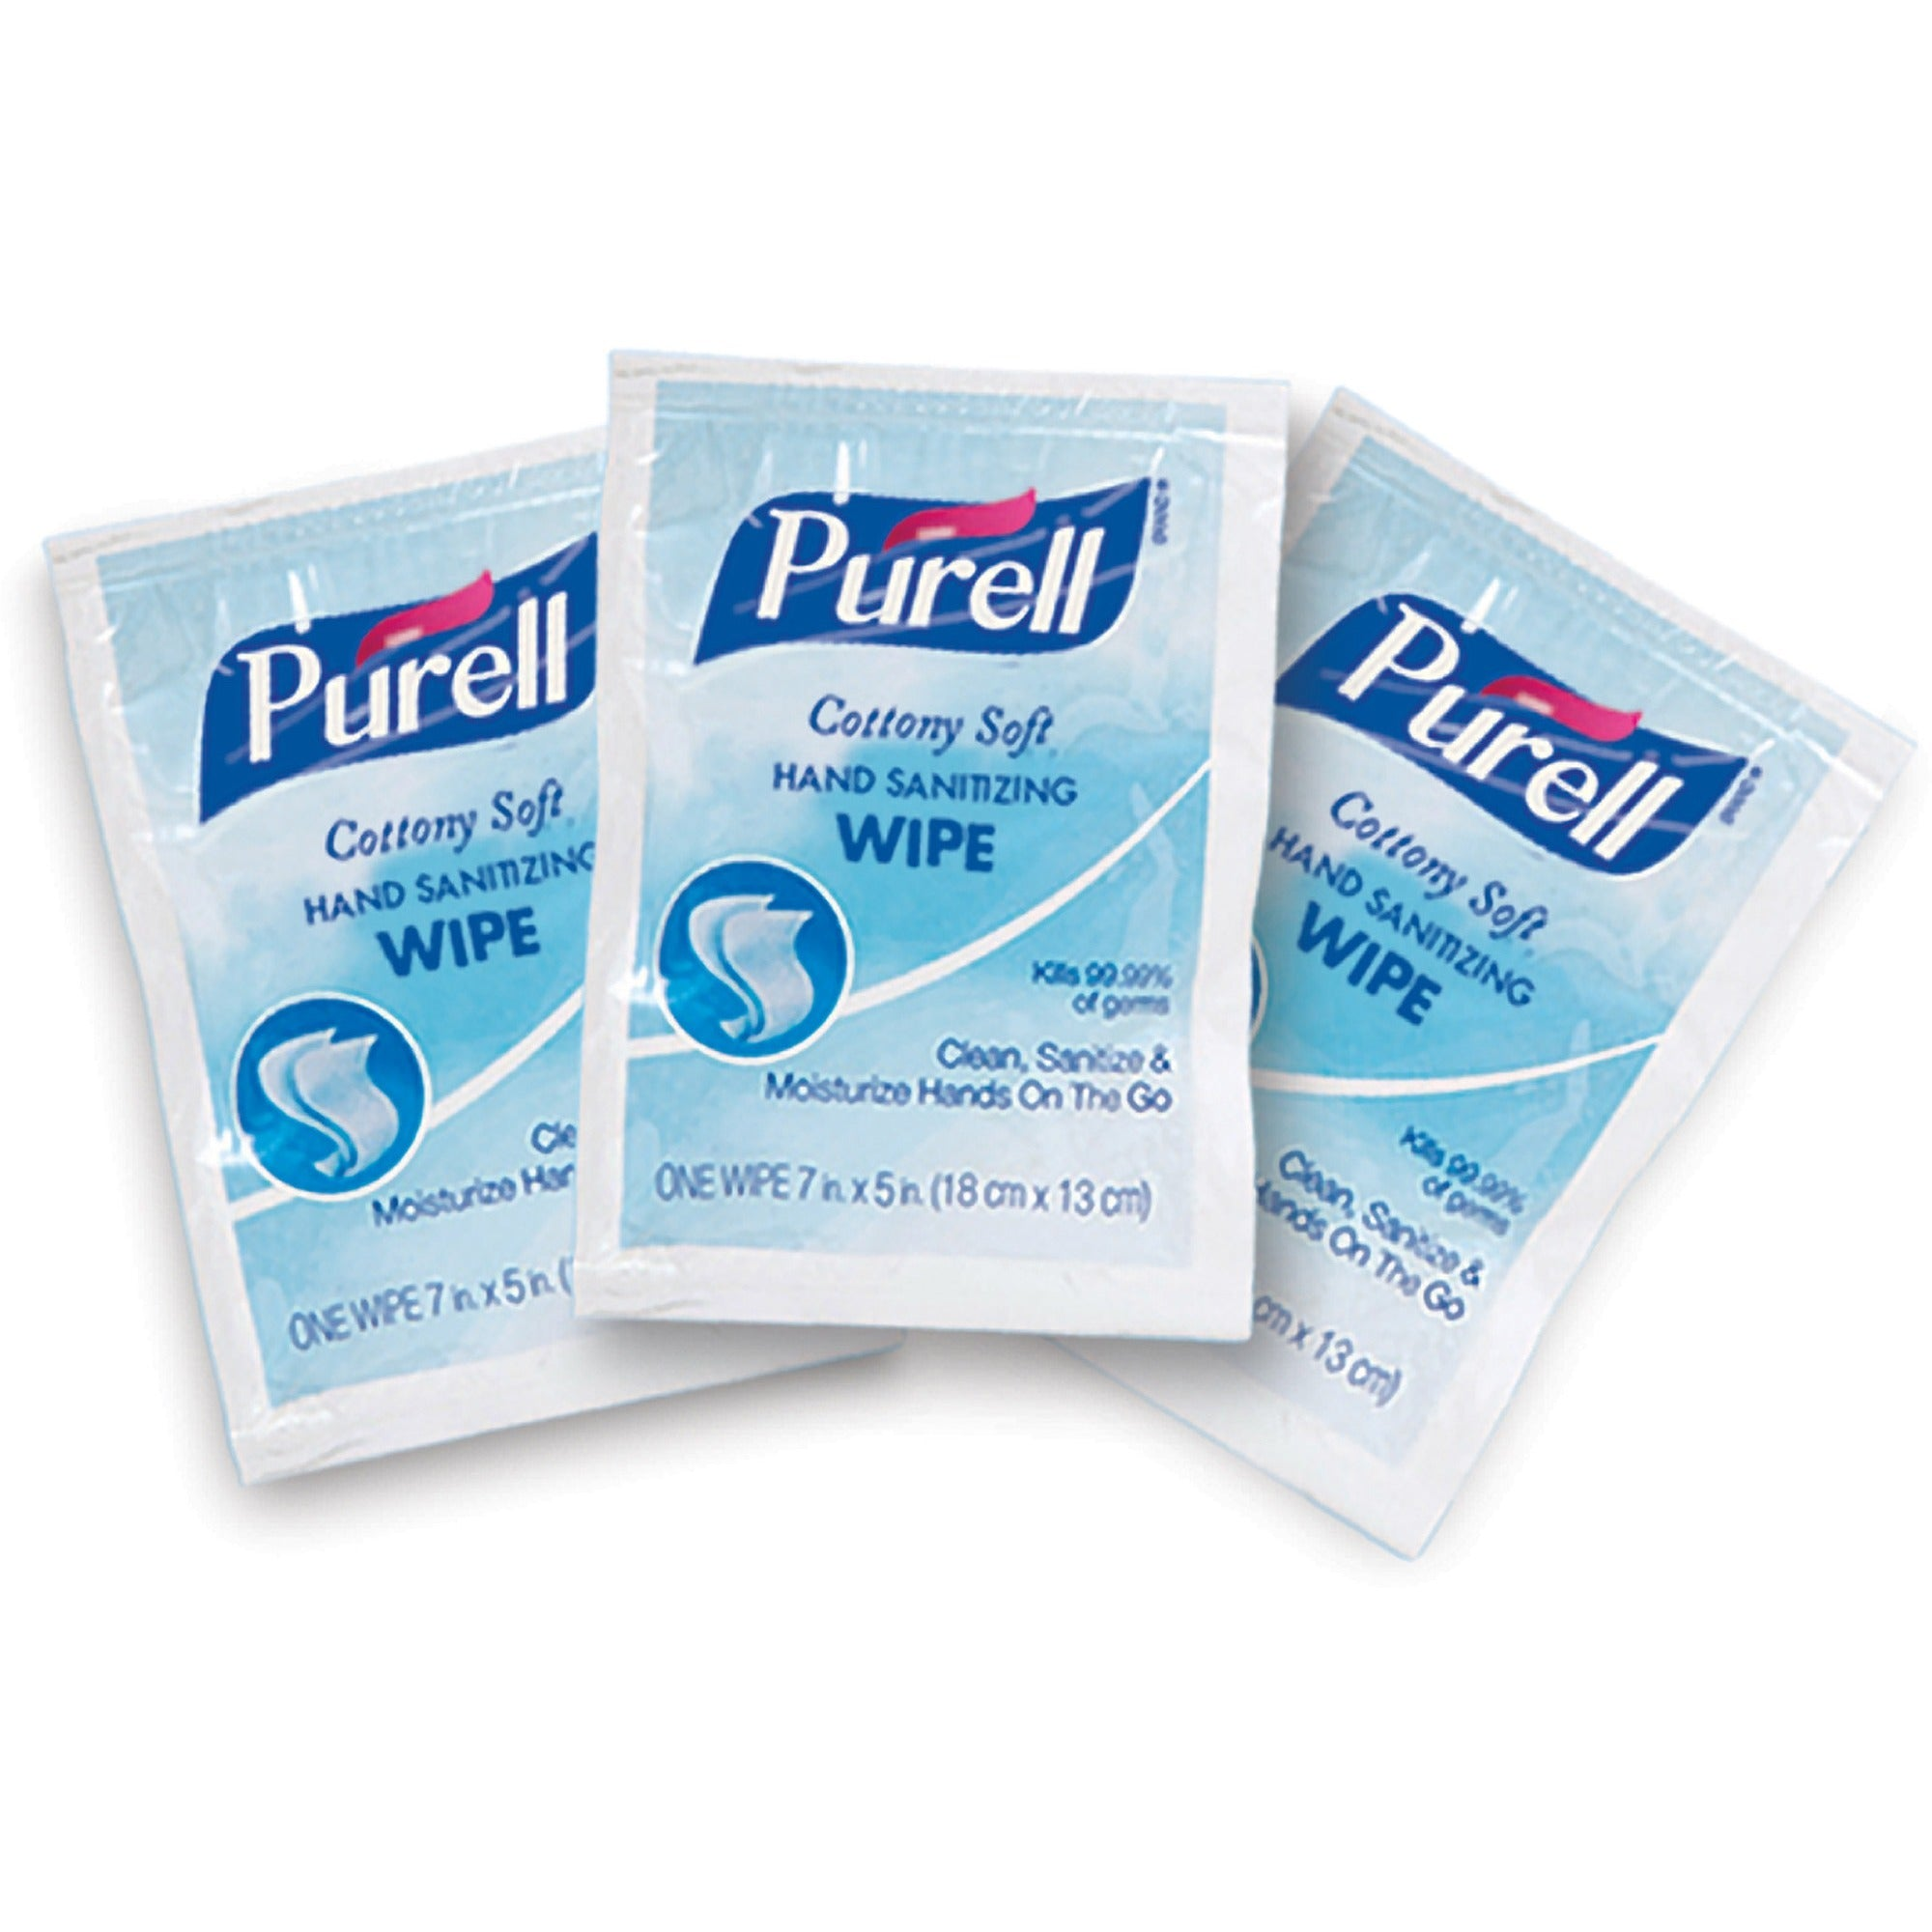 PURELL® Cottony Soft Hand Sanitizing Wipes 1000/Case Bulk